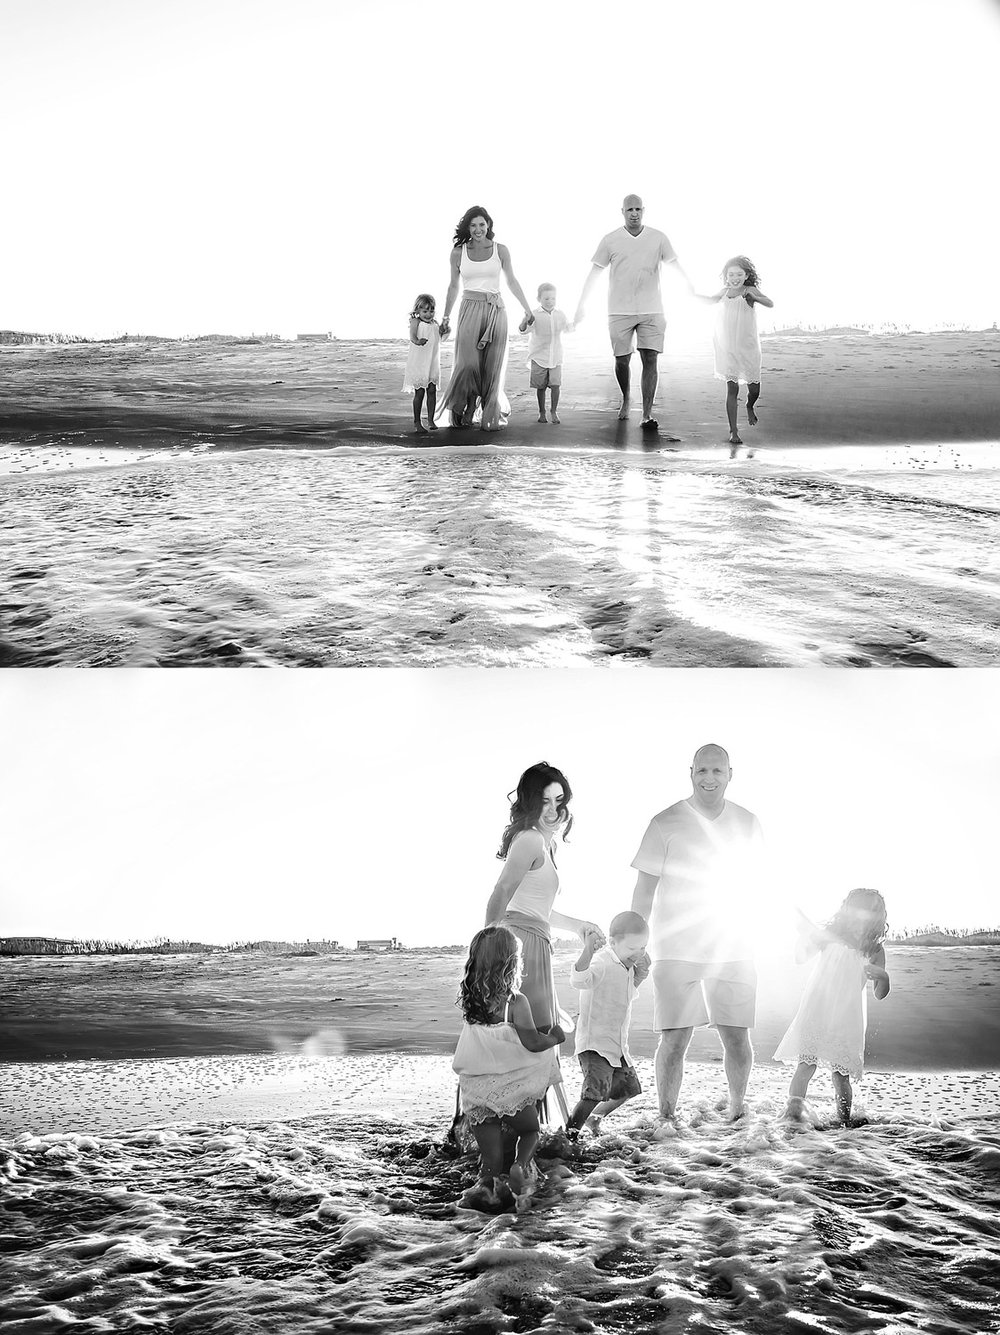 number-one-family-lifestyle-photographer-virginia-beach-norfolk-pictures-melissa-bliss-photography.jpg